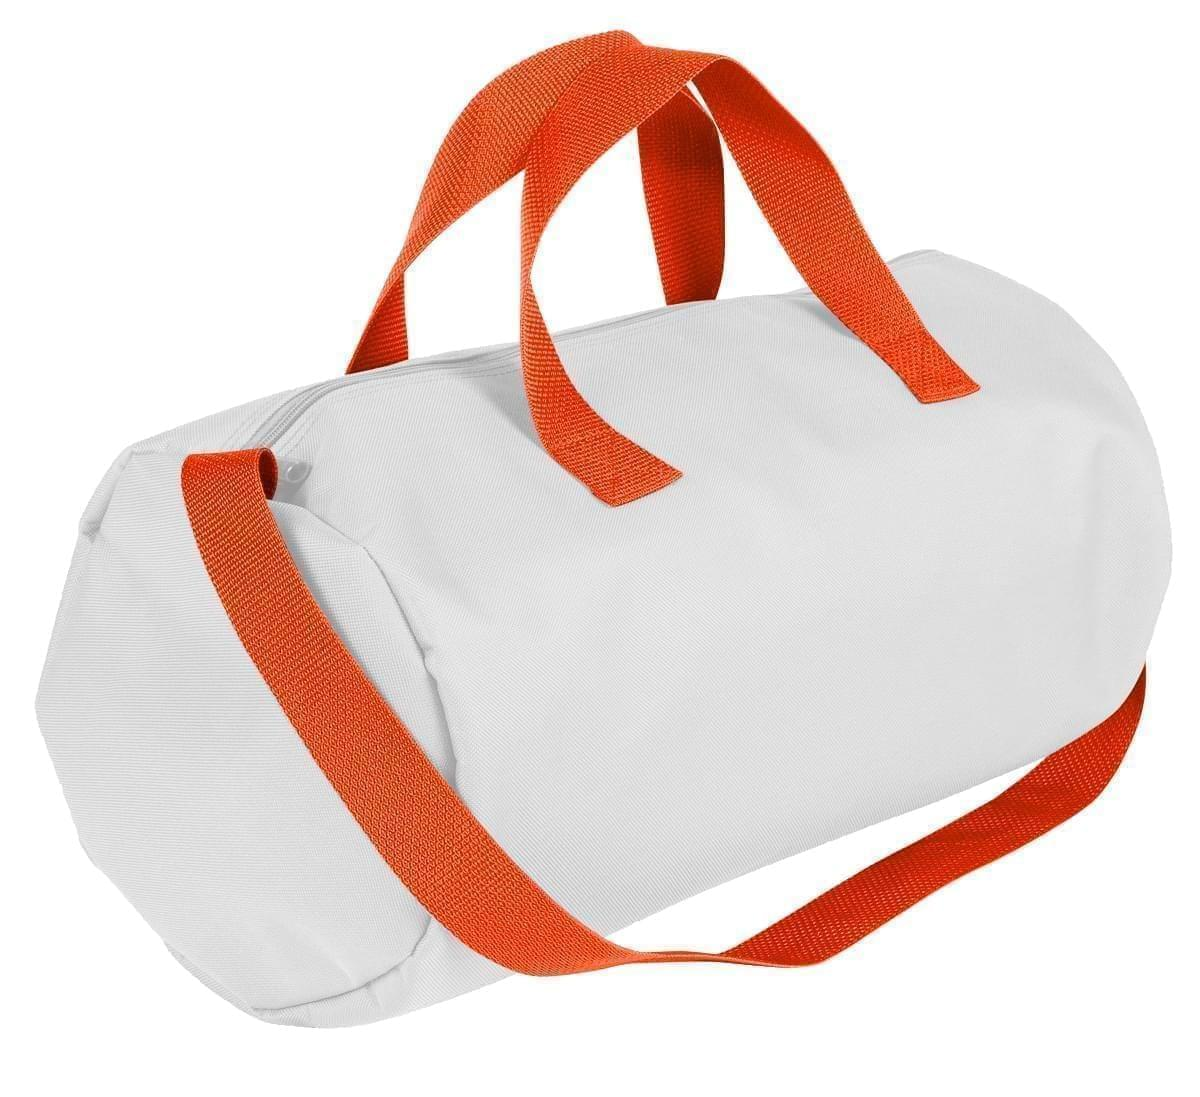 USA Made Nylon Poly Gym Roll Bags, White-Orange, ROCX31AA30